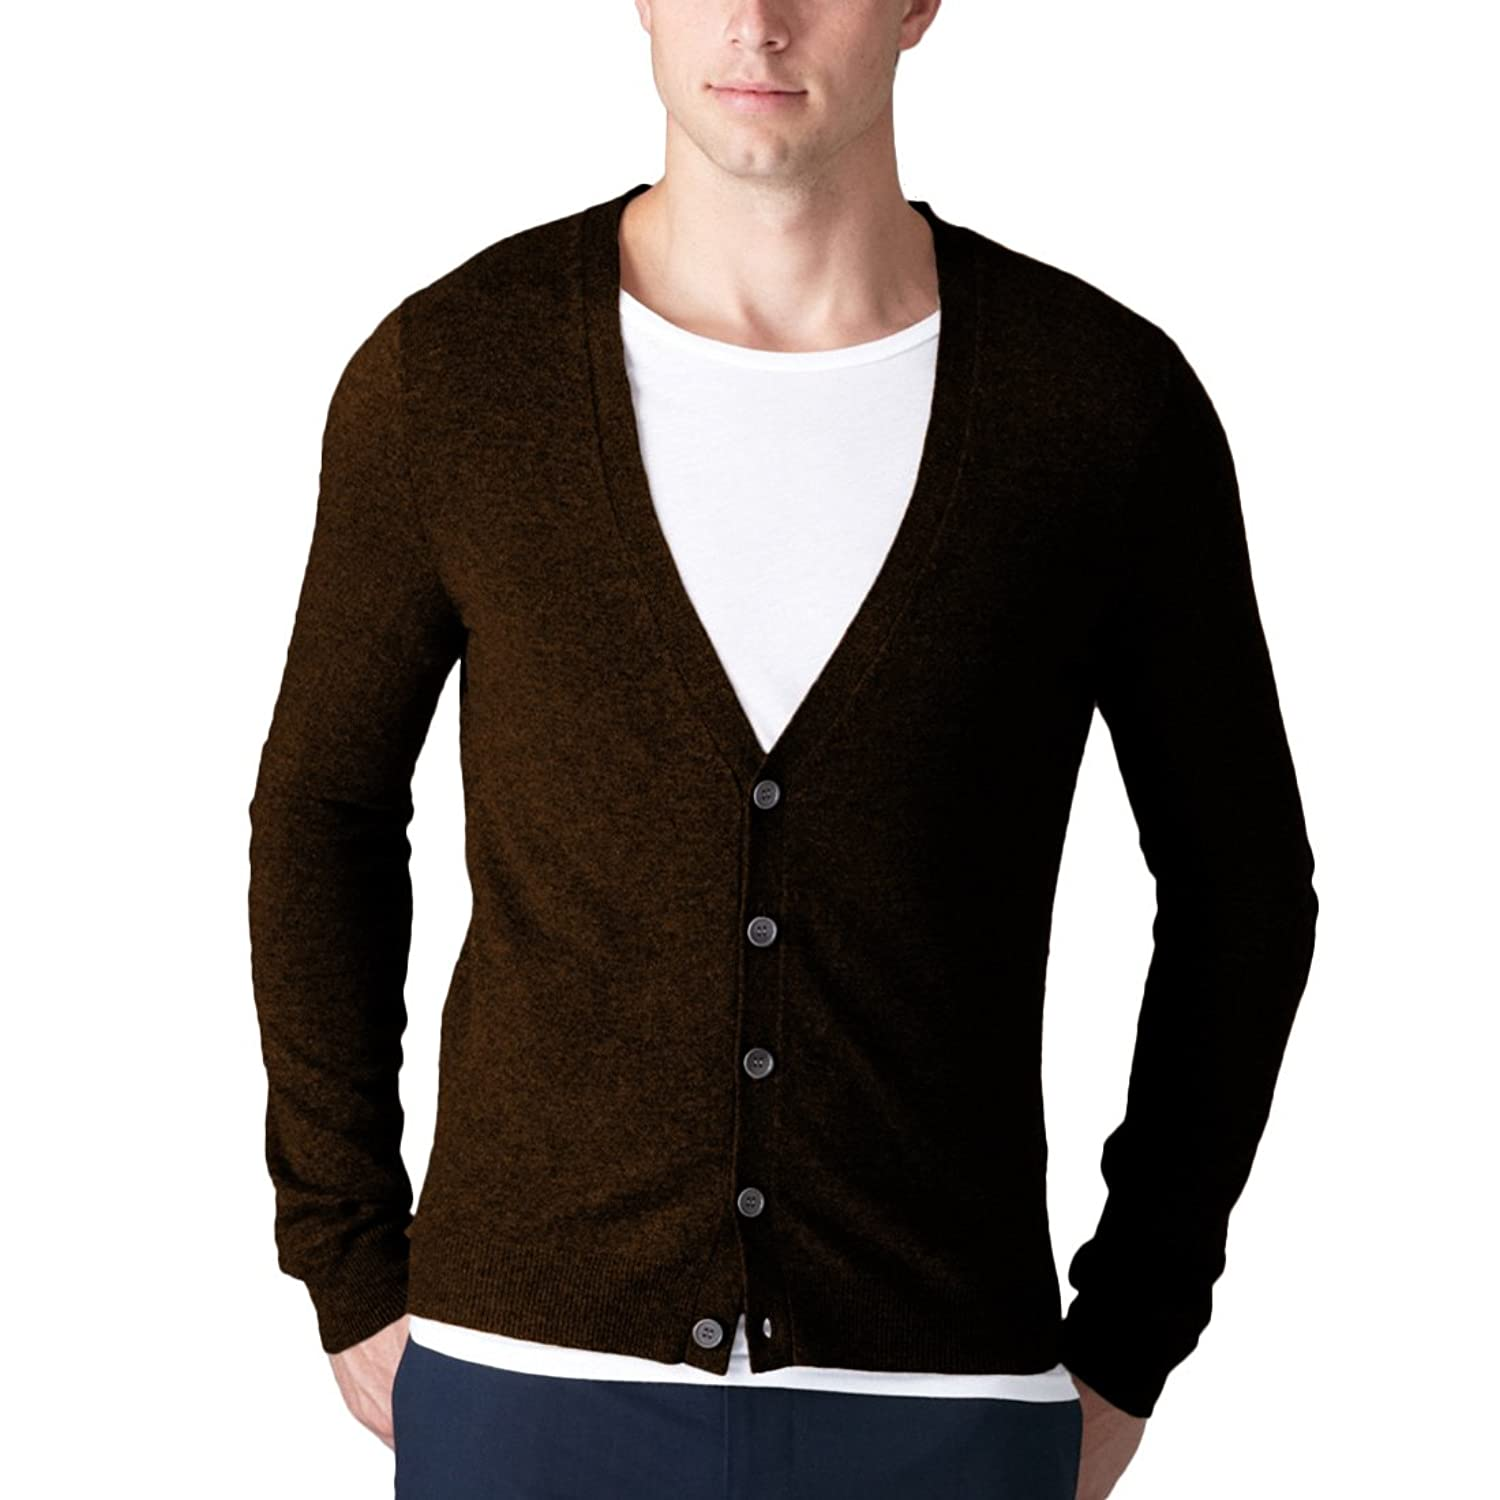 Parisbonbon Men's 100% Cashmere V-Neck Cardigan